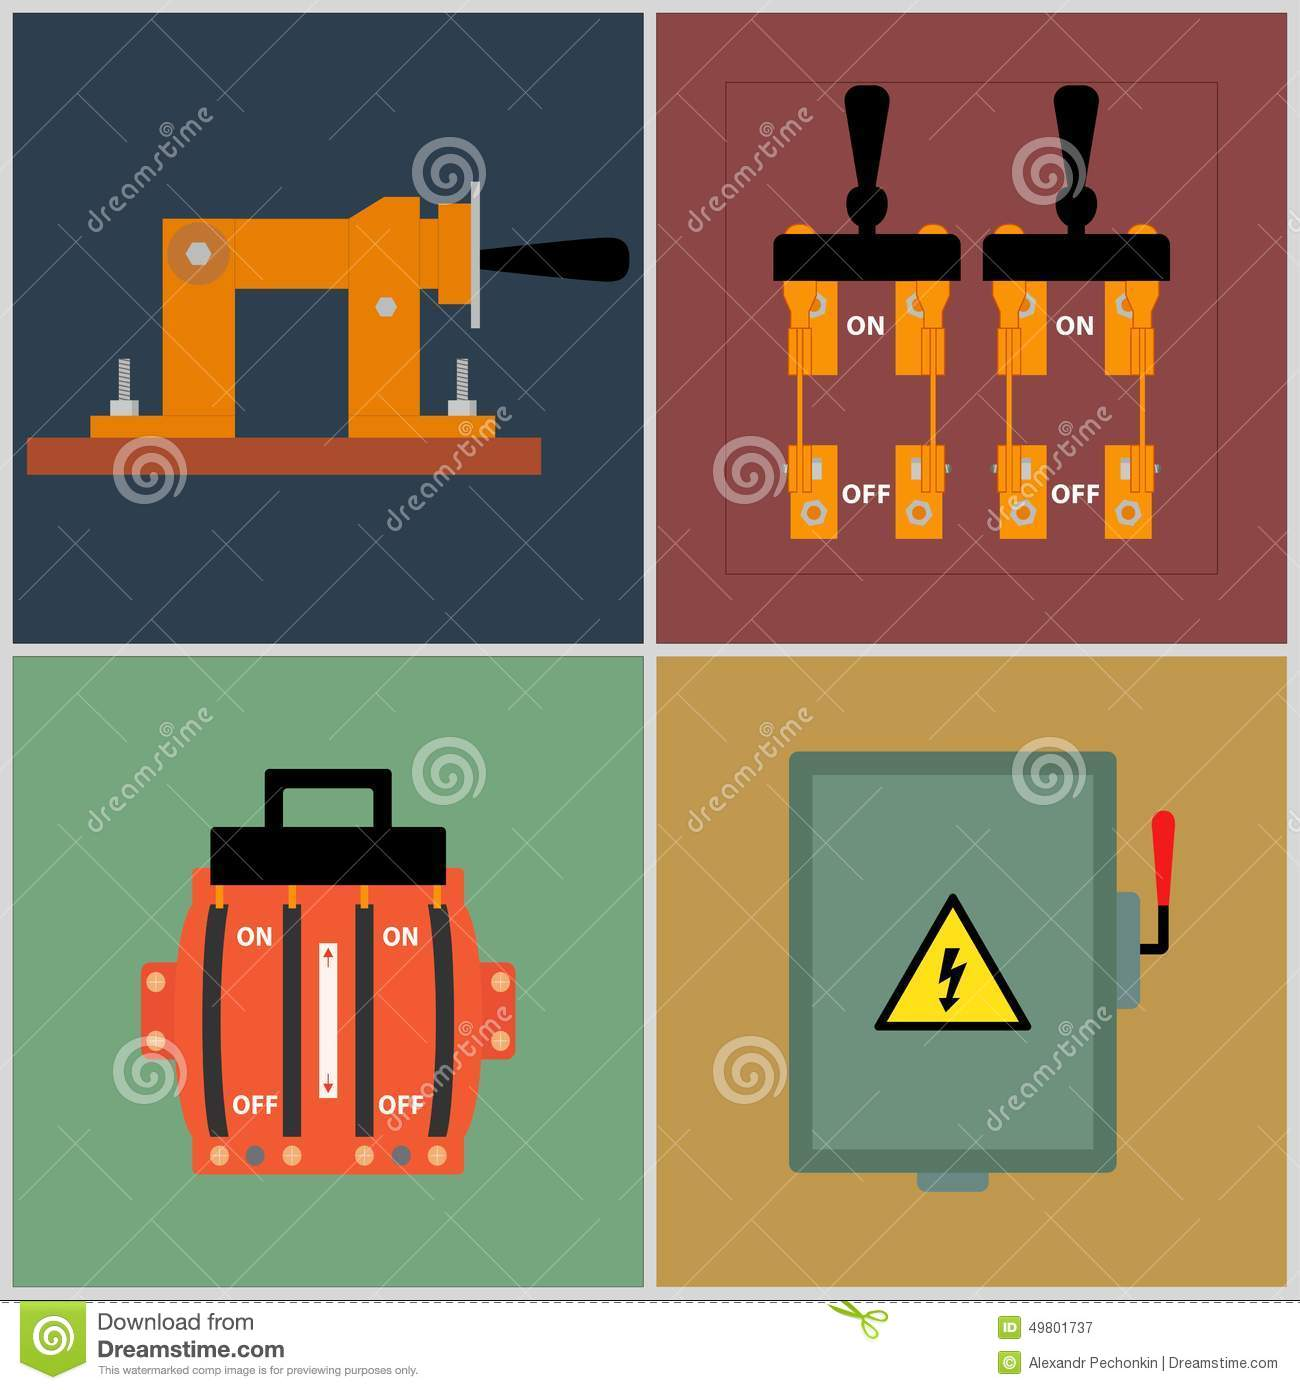 Knife Switch Stock Vector Illustration Of Electricity 49801737 Circuitbreakeroffjpg Flat Icons Electrical Circuit Breaker Contact